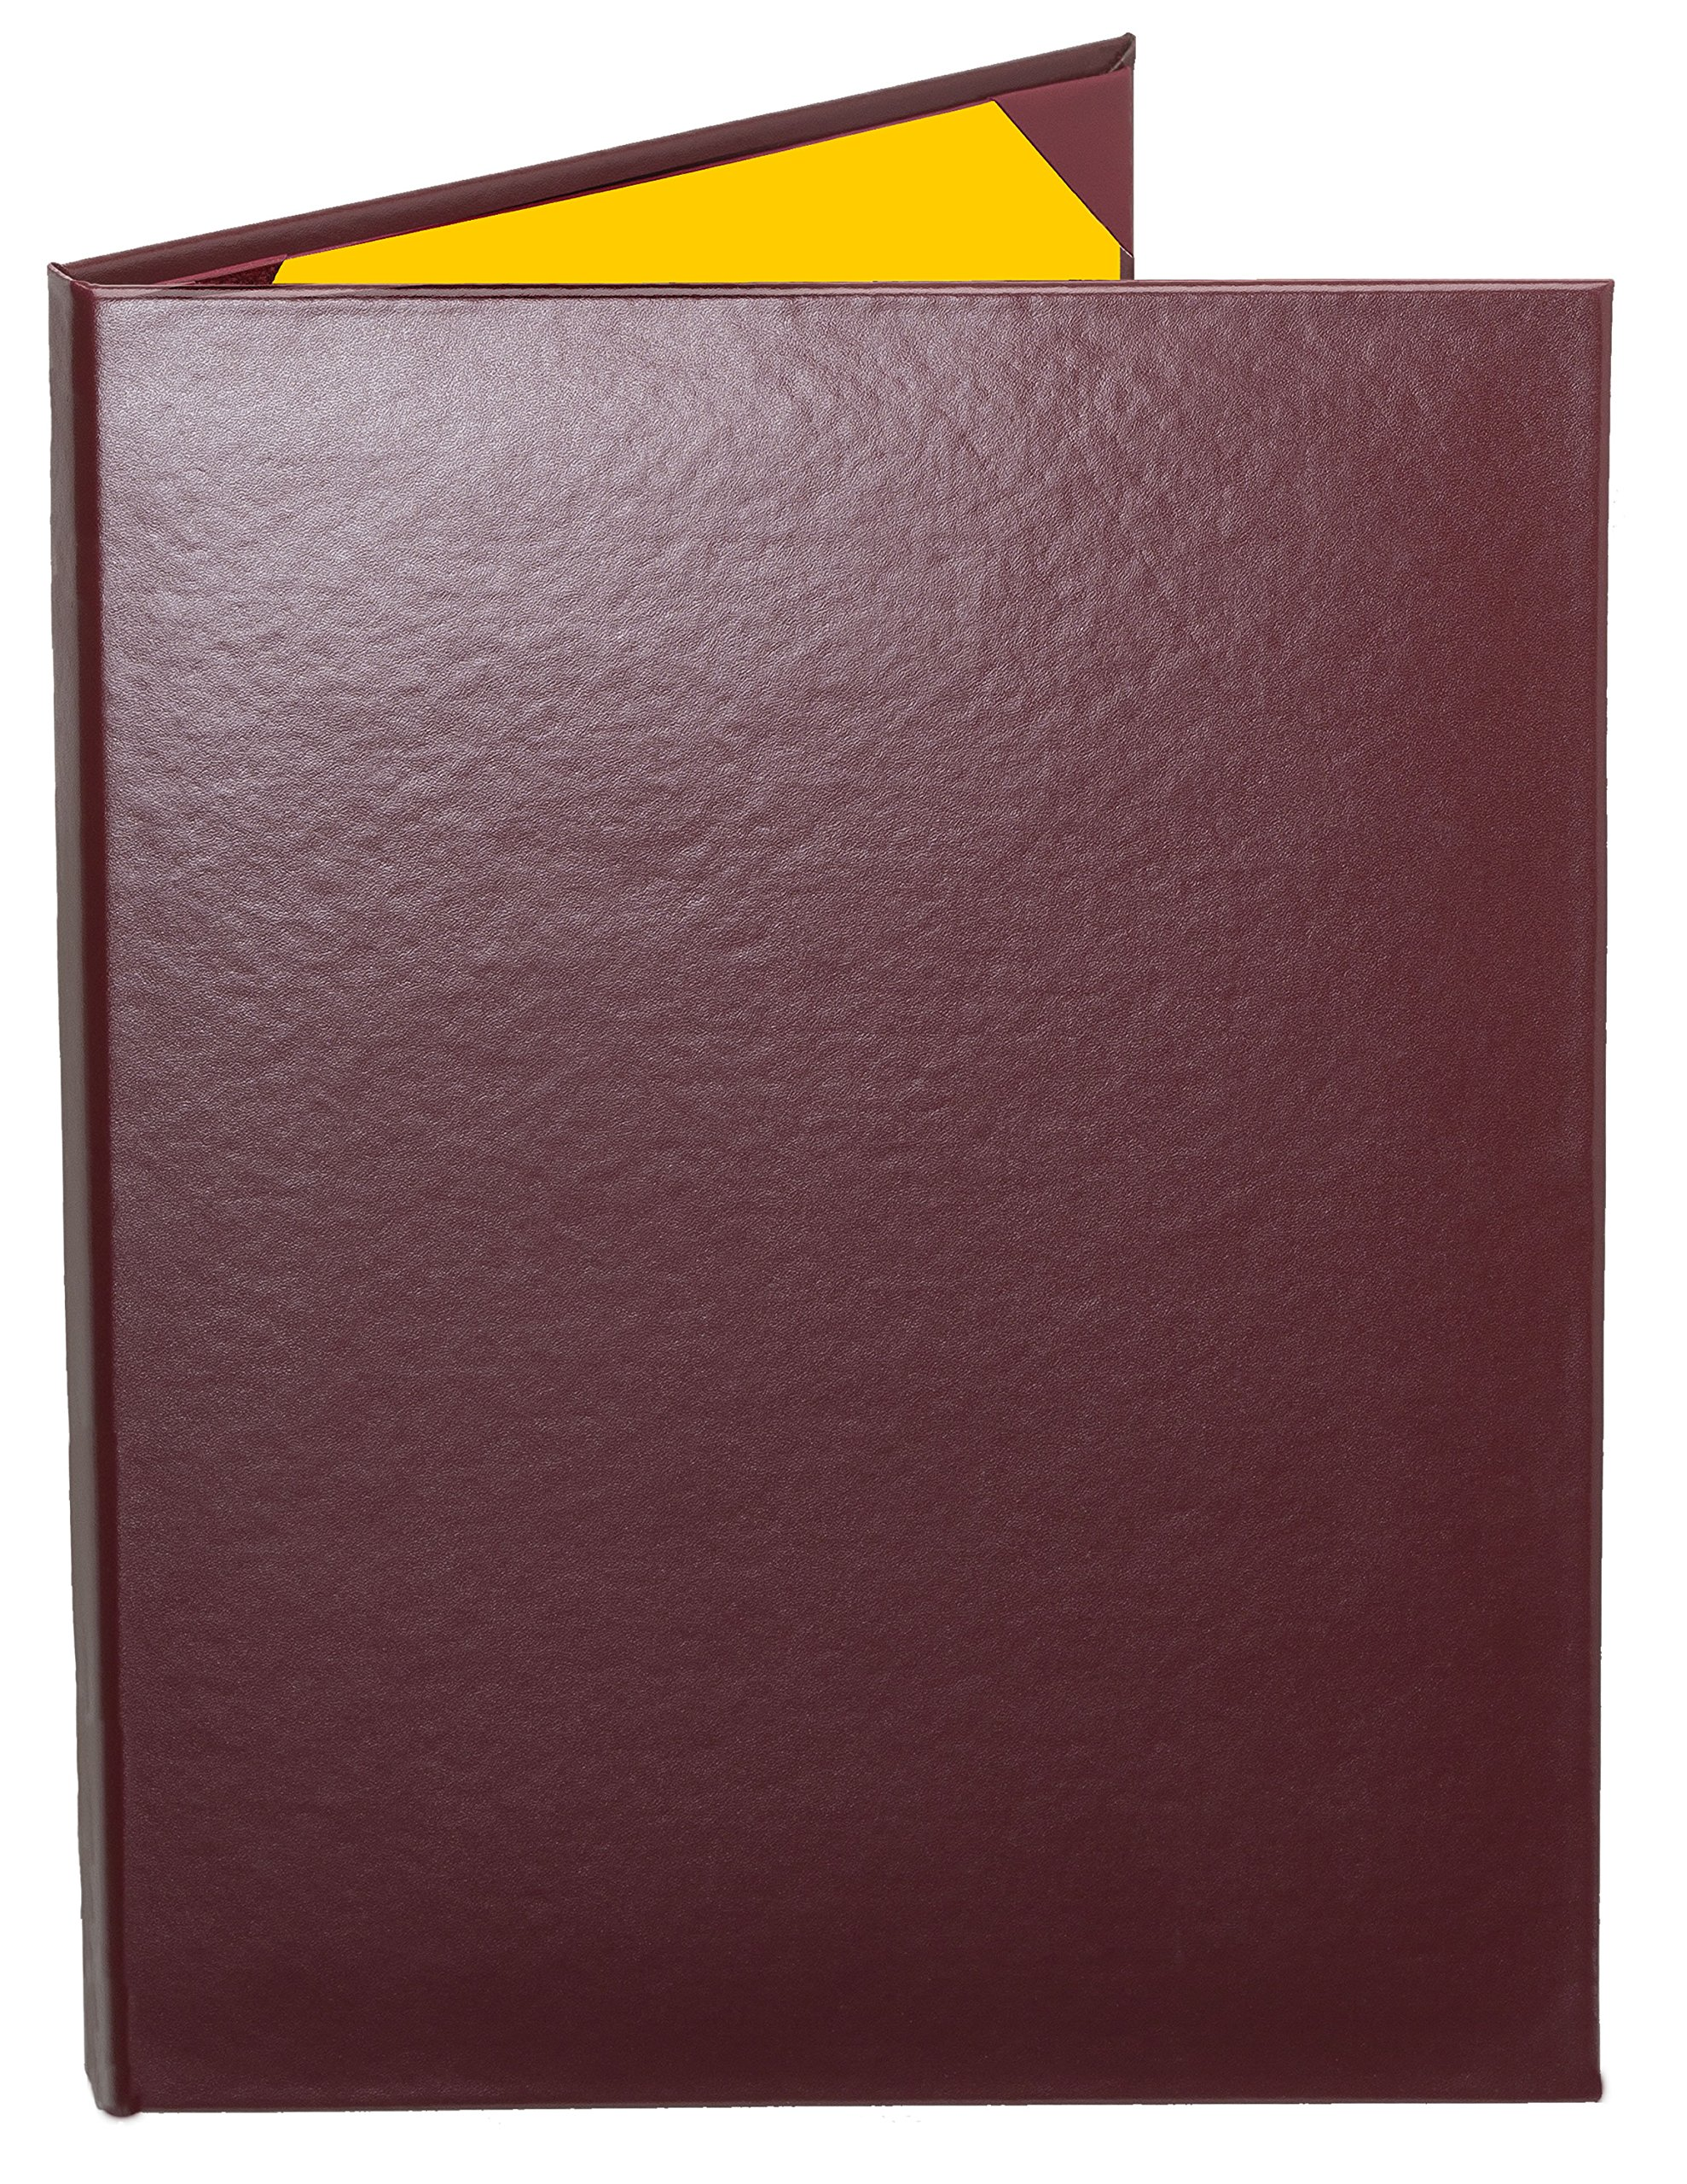 Case of 5 Cascade Casebound Menu Covers #8024 BURGUNDY DOUBLE PANEL - 2-VIEW - 8.5'' WIDE x 11'' TALL - WATERFALL EDGE. Interior album-style corners. Type MenuCoverMan in Amazon search.